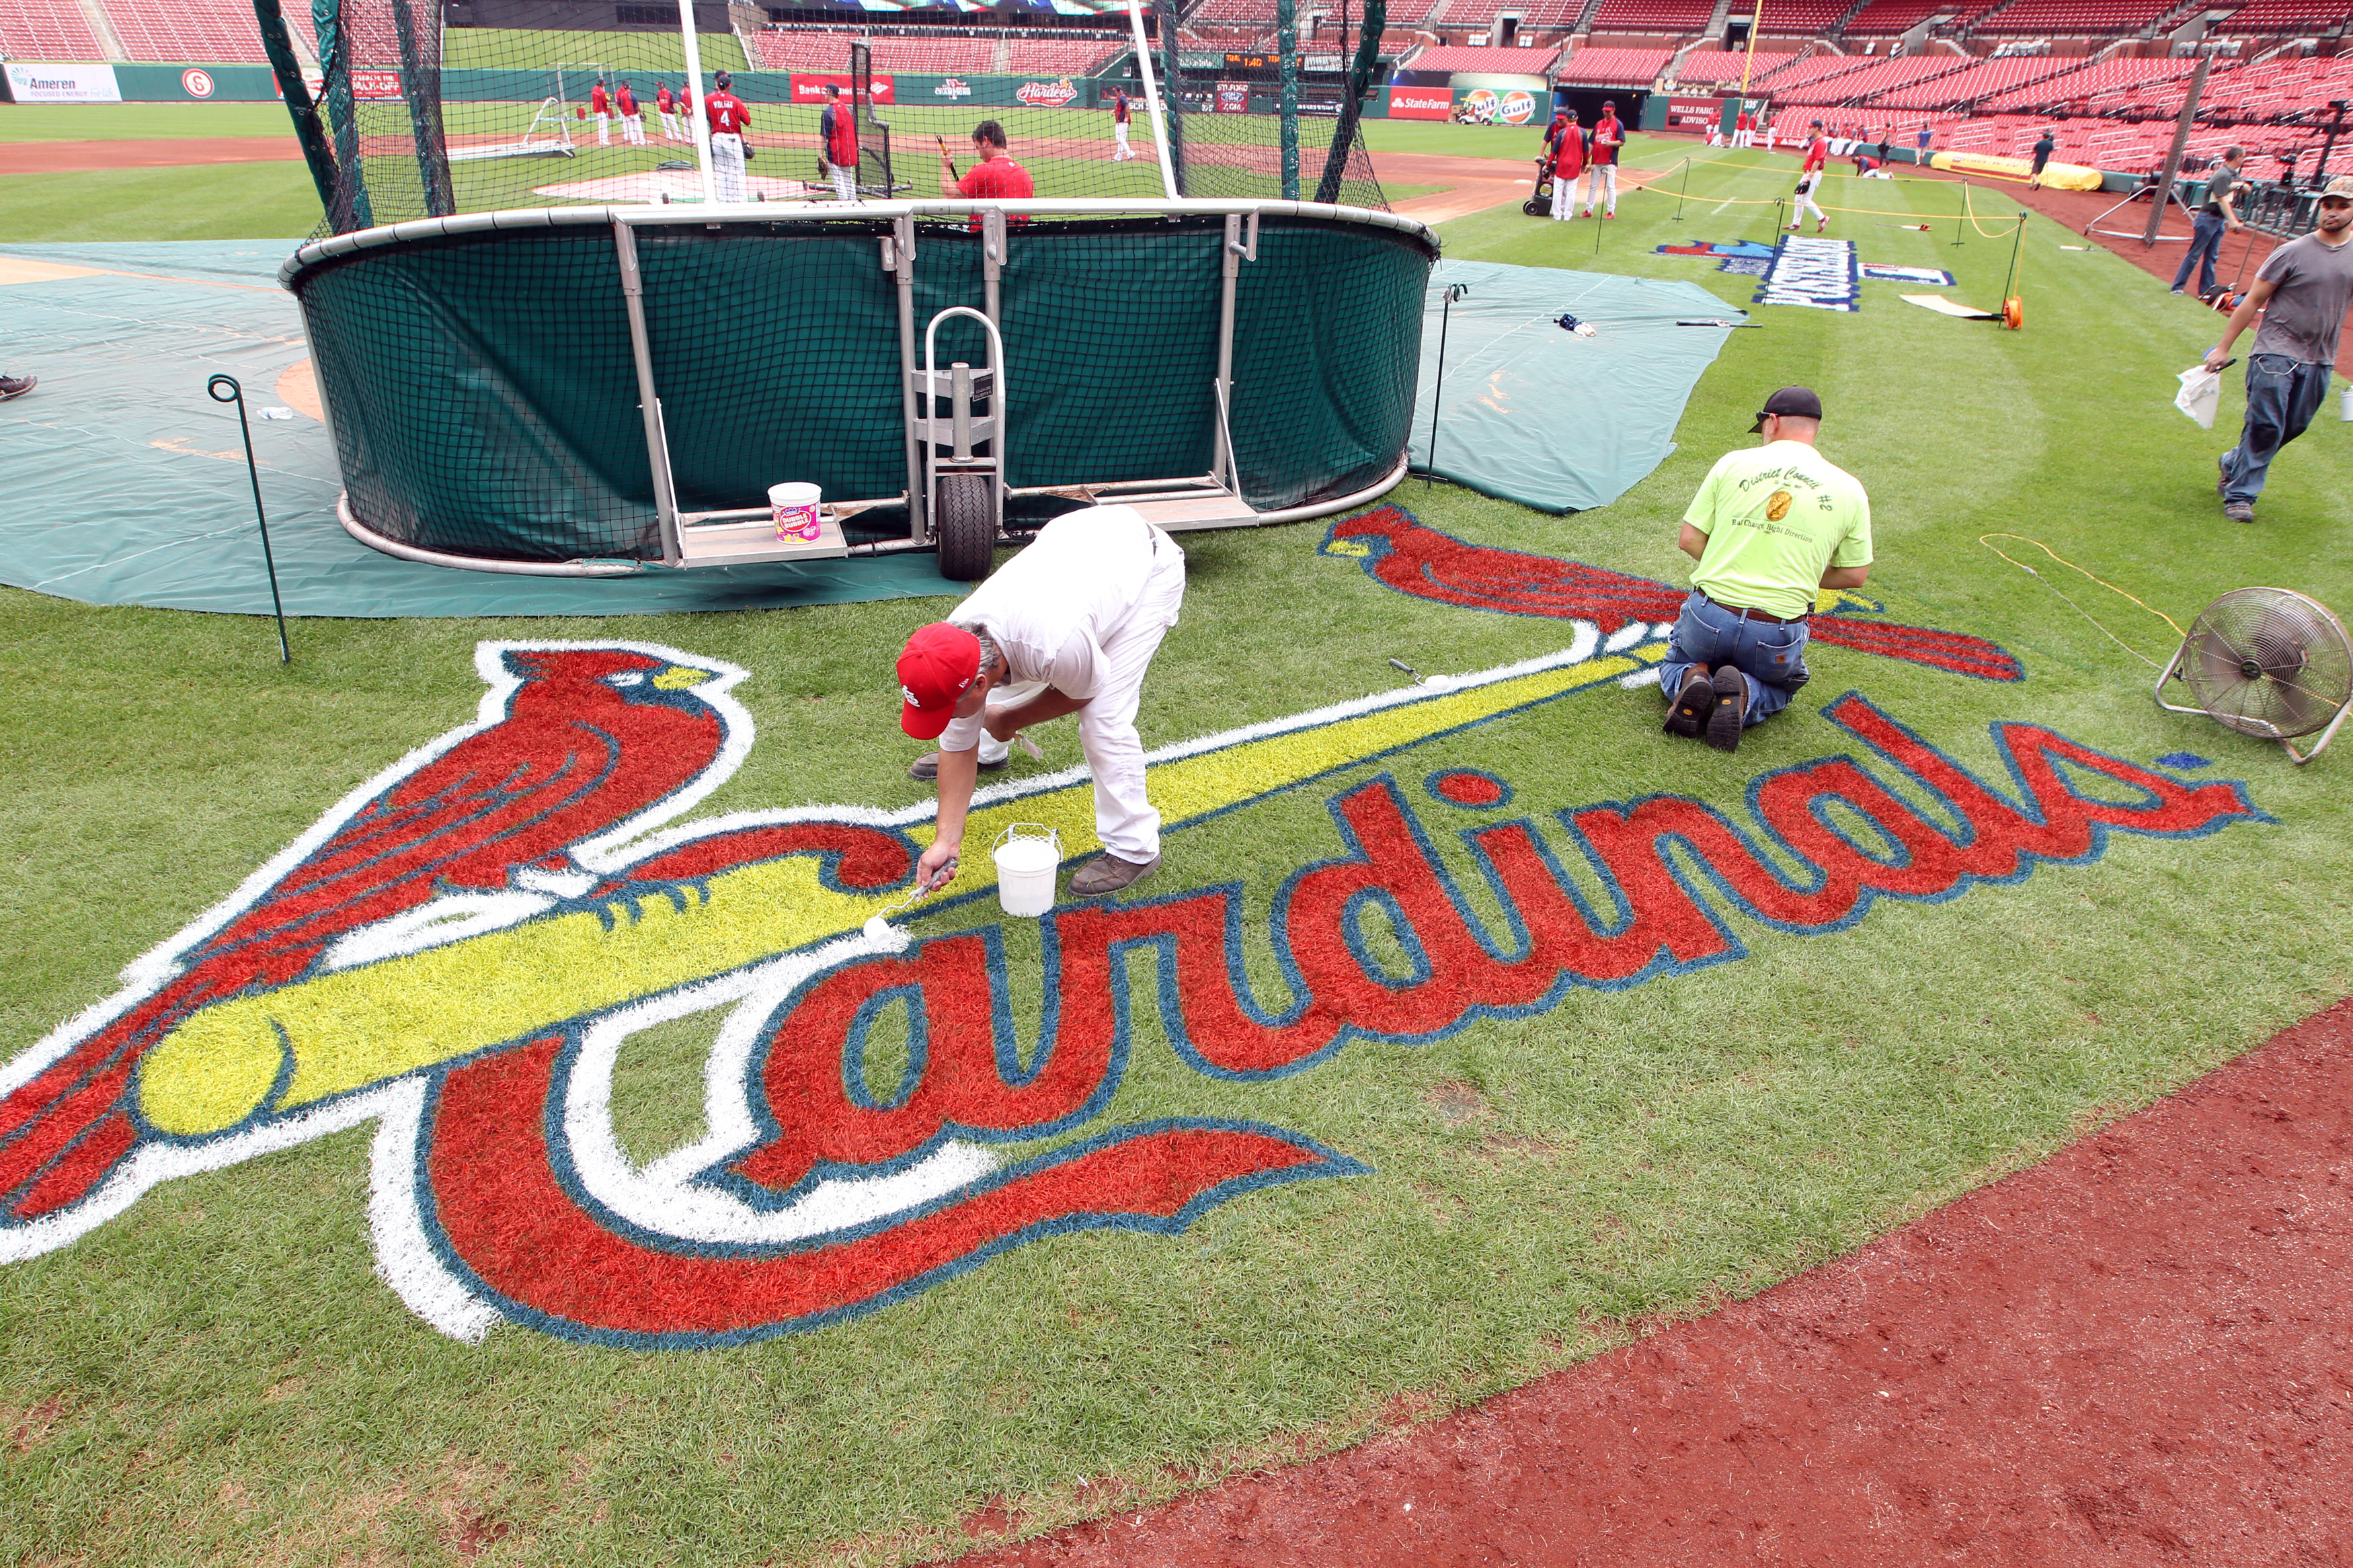 St. Louis Cardinals prepare for opening game of NLDS